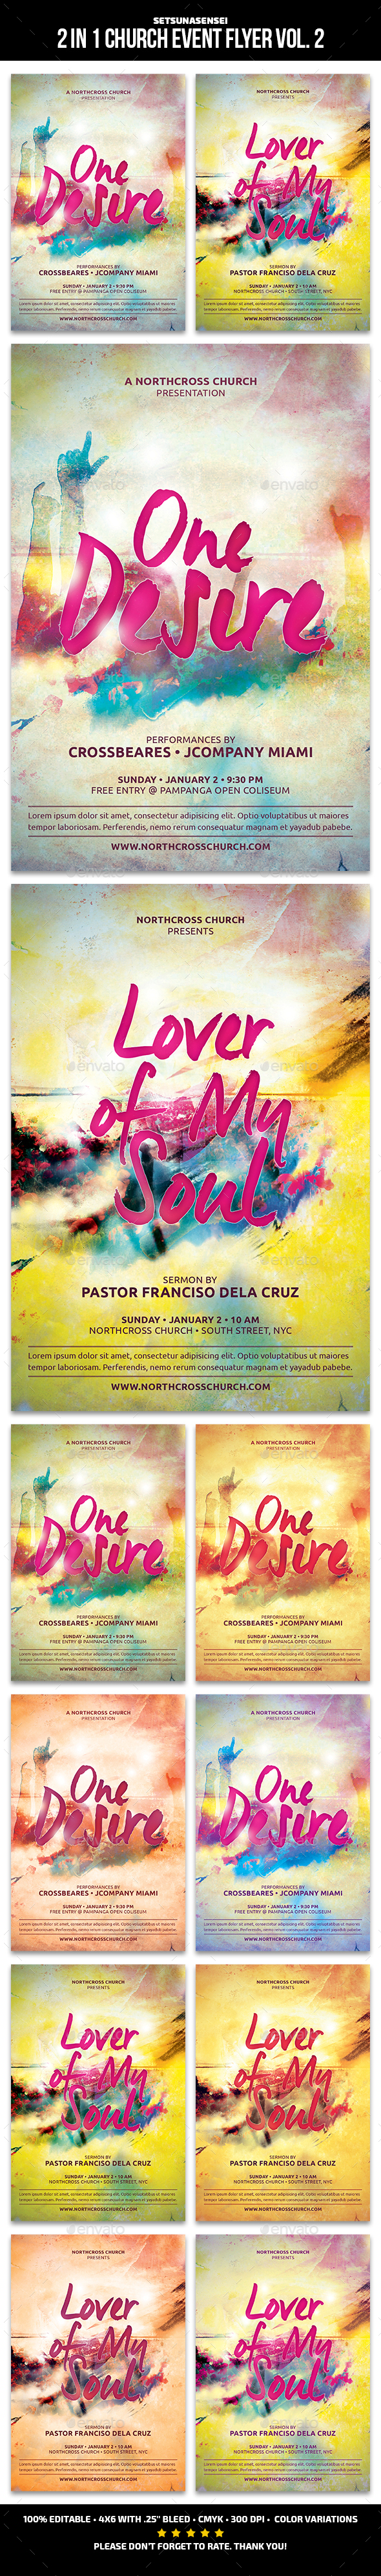 2 in 1 Church Event Flyer Vol. 2 - Church Flyers